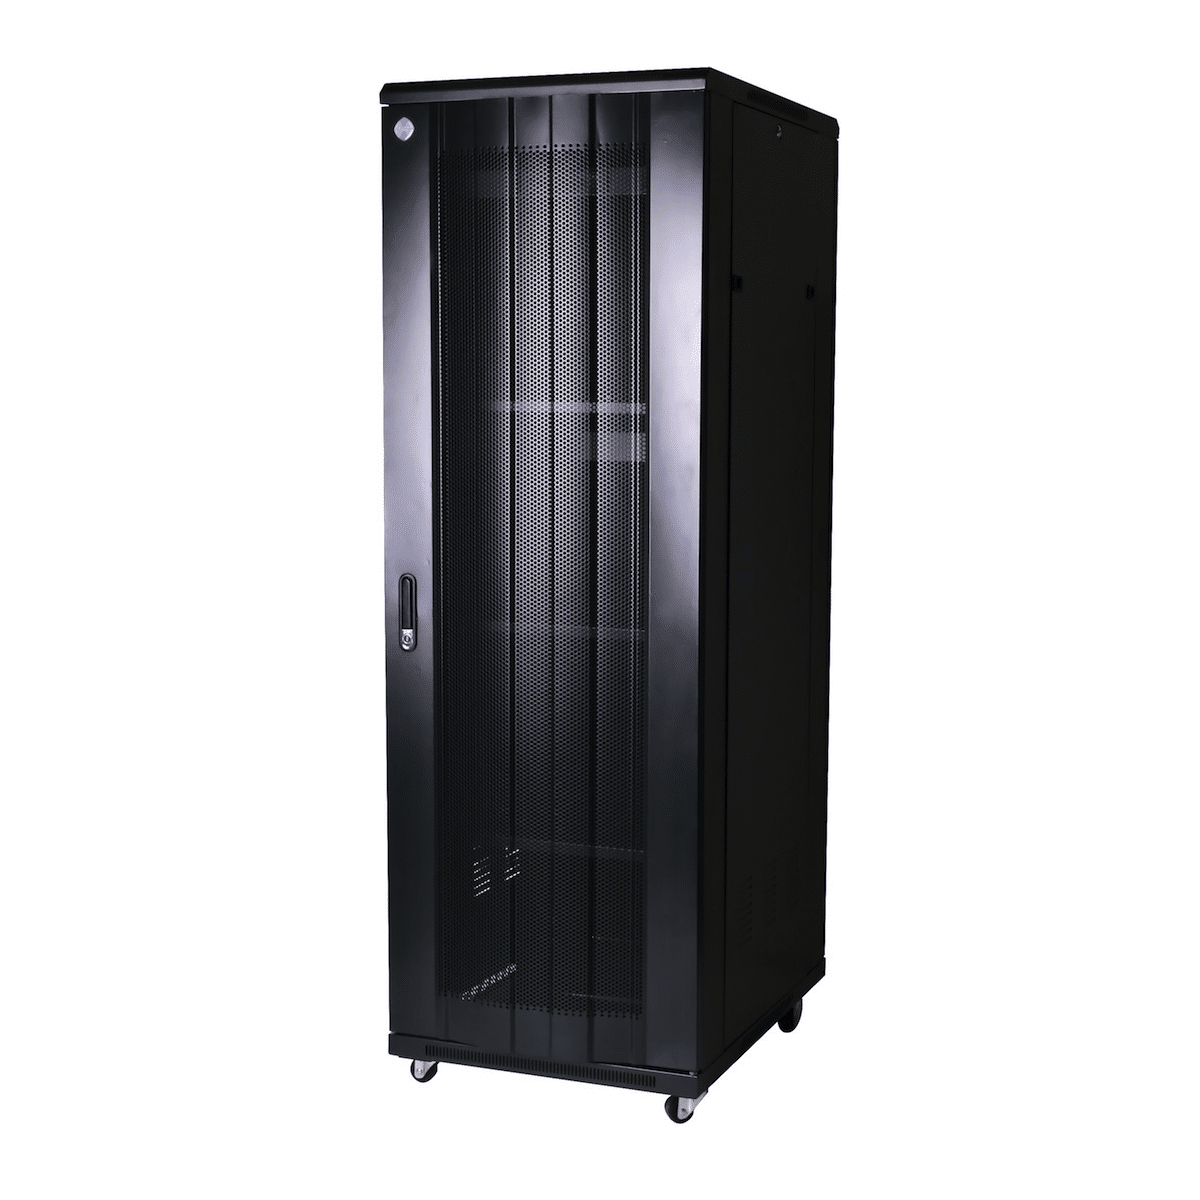 Curved 45RU 1200mm Deep X 600mm Wide Rack Cabinet